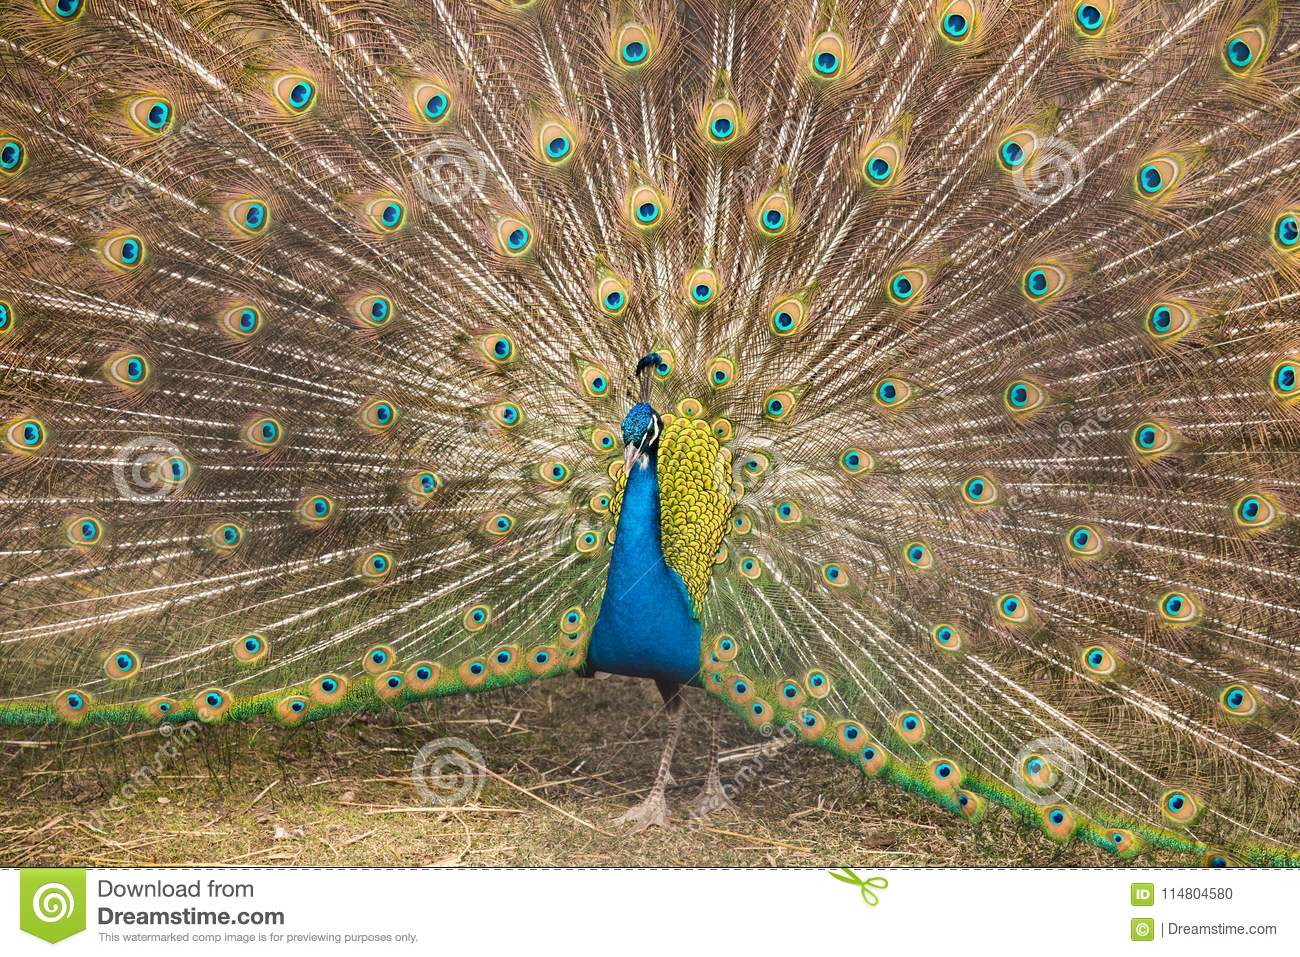 A beautiful peacock at the zoo.